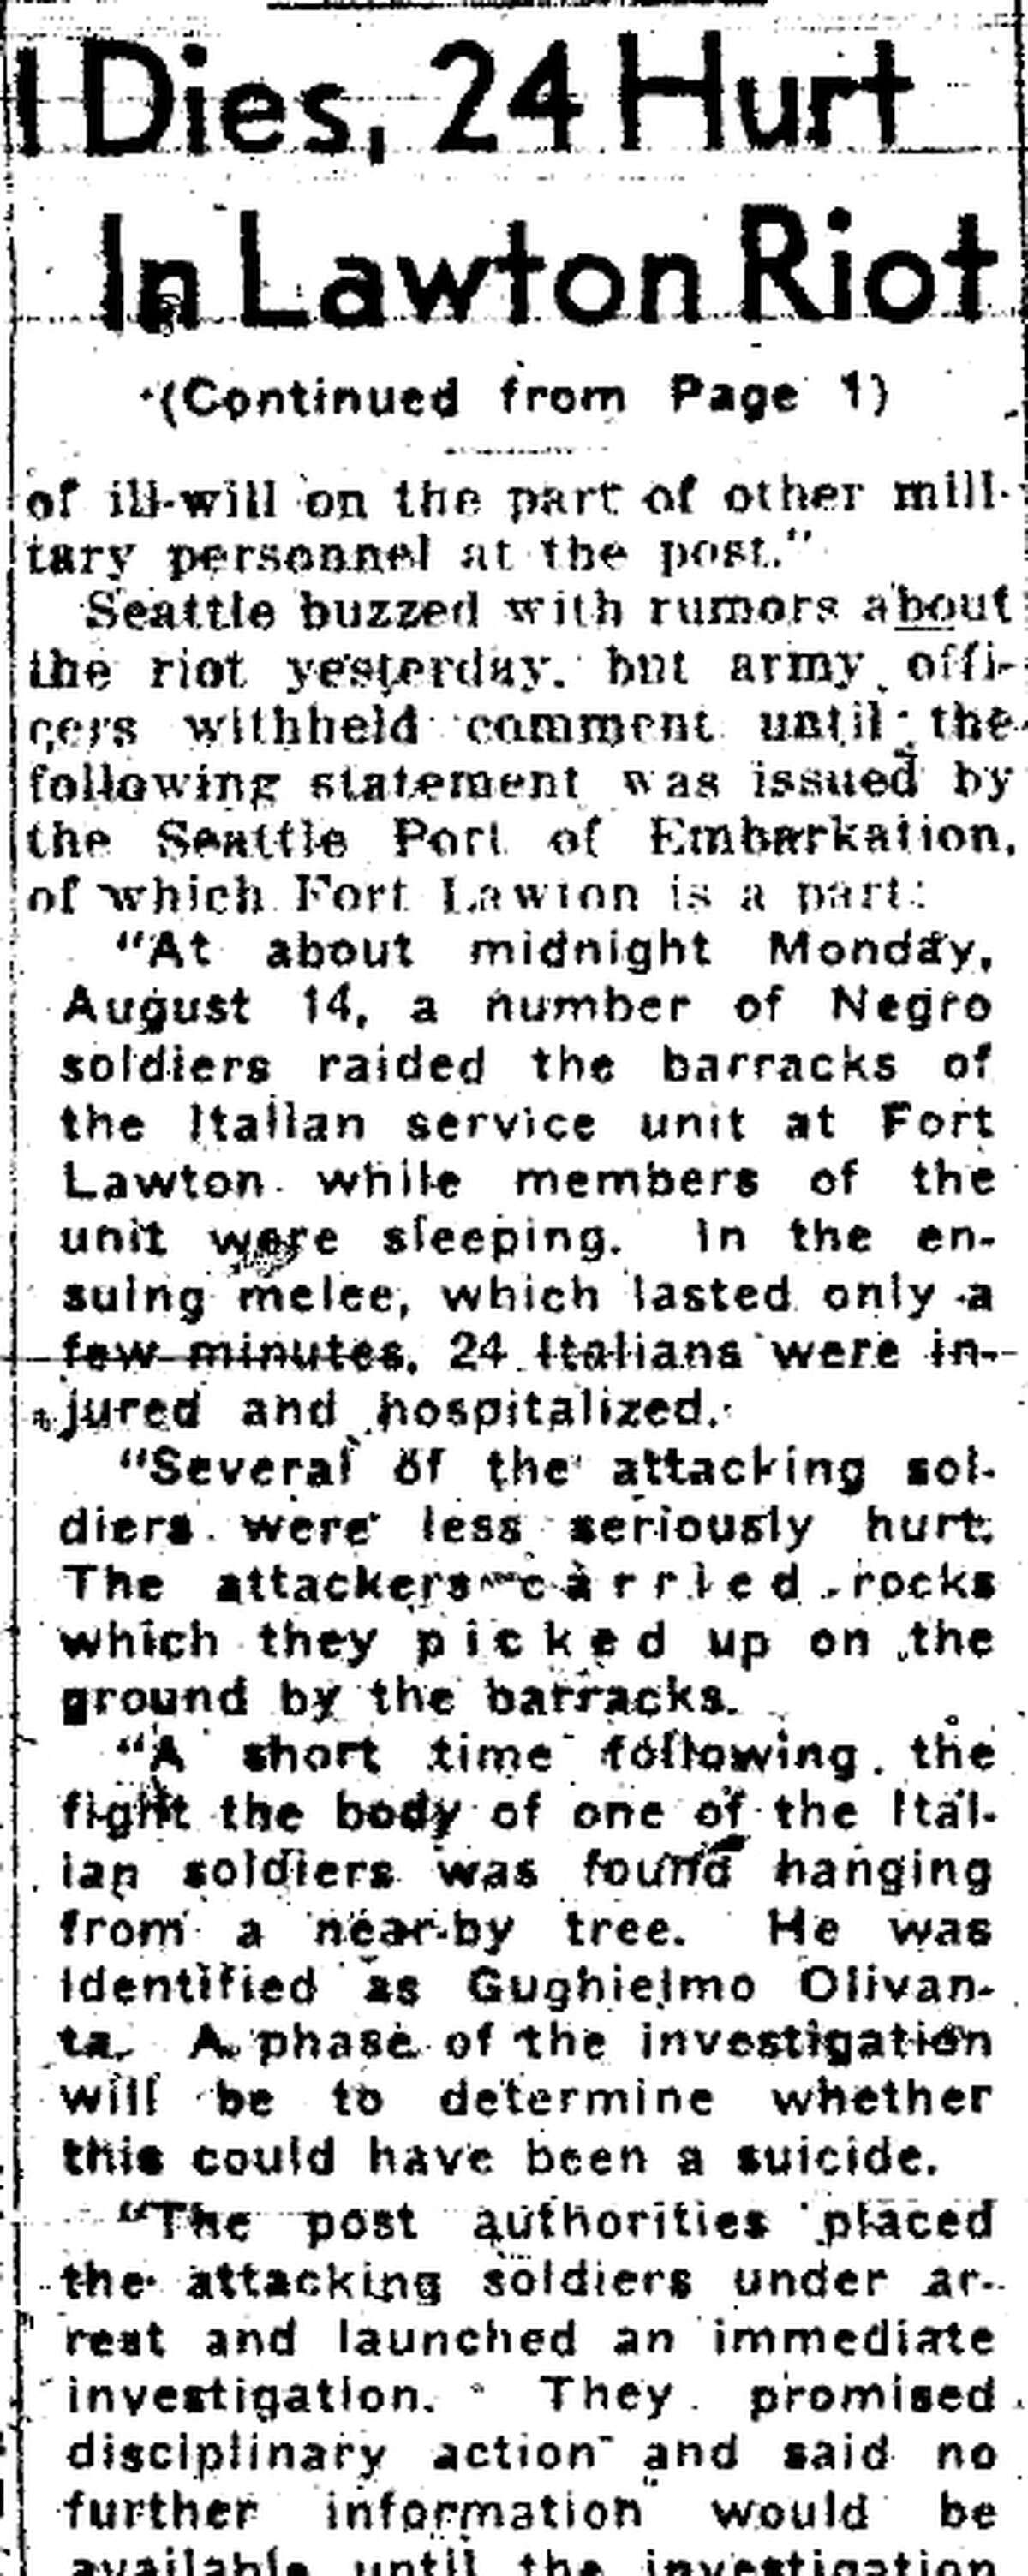 The Aug. 16, 1944 P-I story about the Fort Lawton riot.